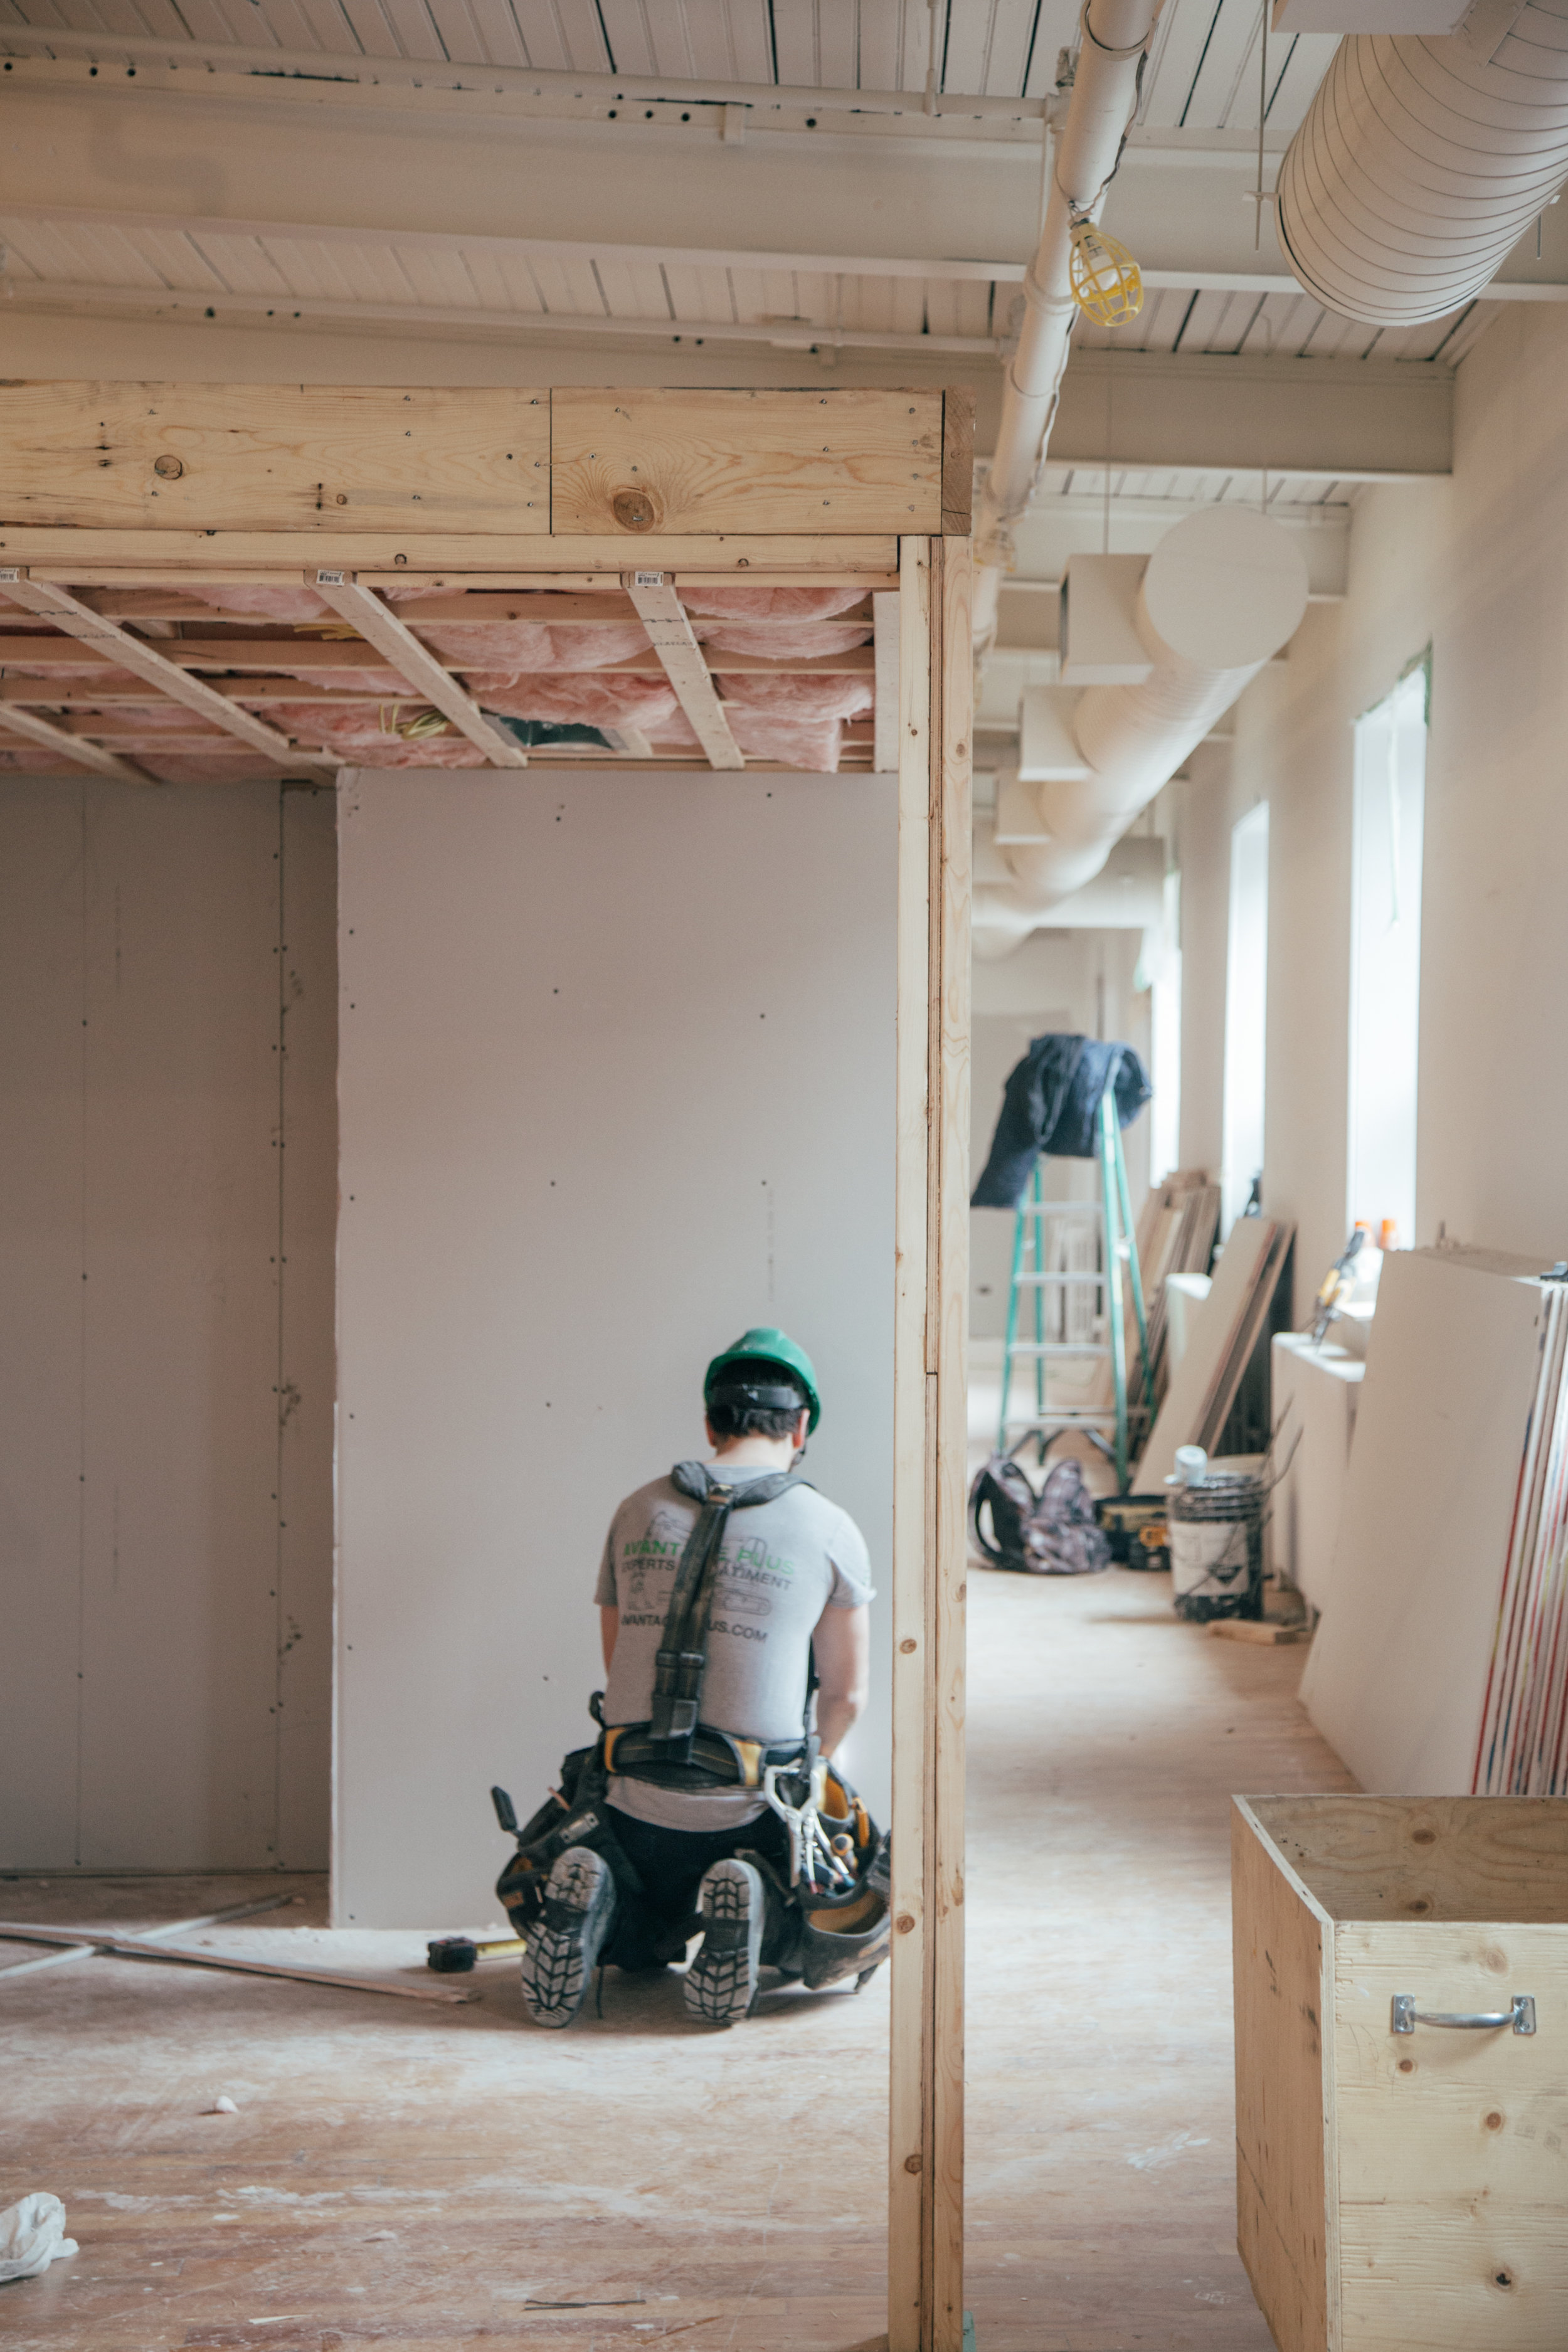 Contractor kneeling on ground working. Photo by Unsplash